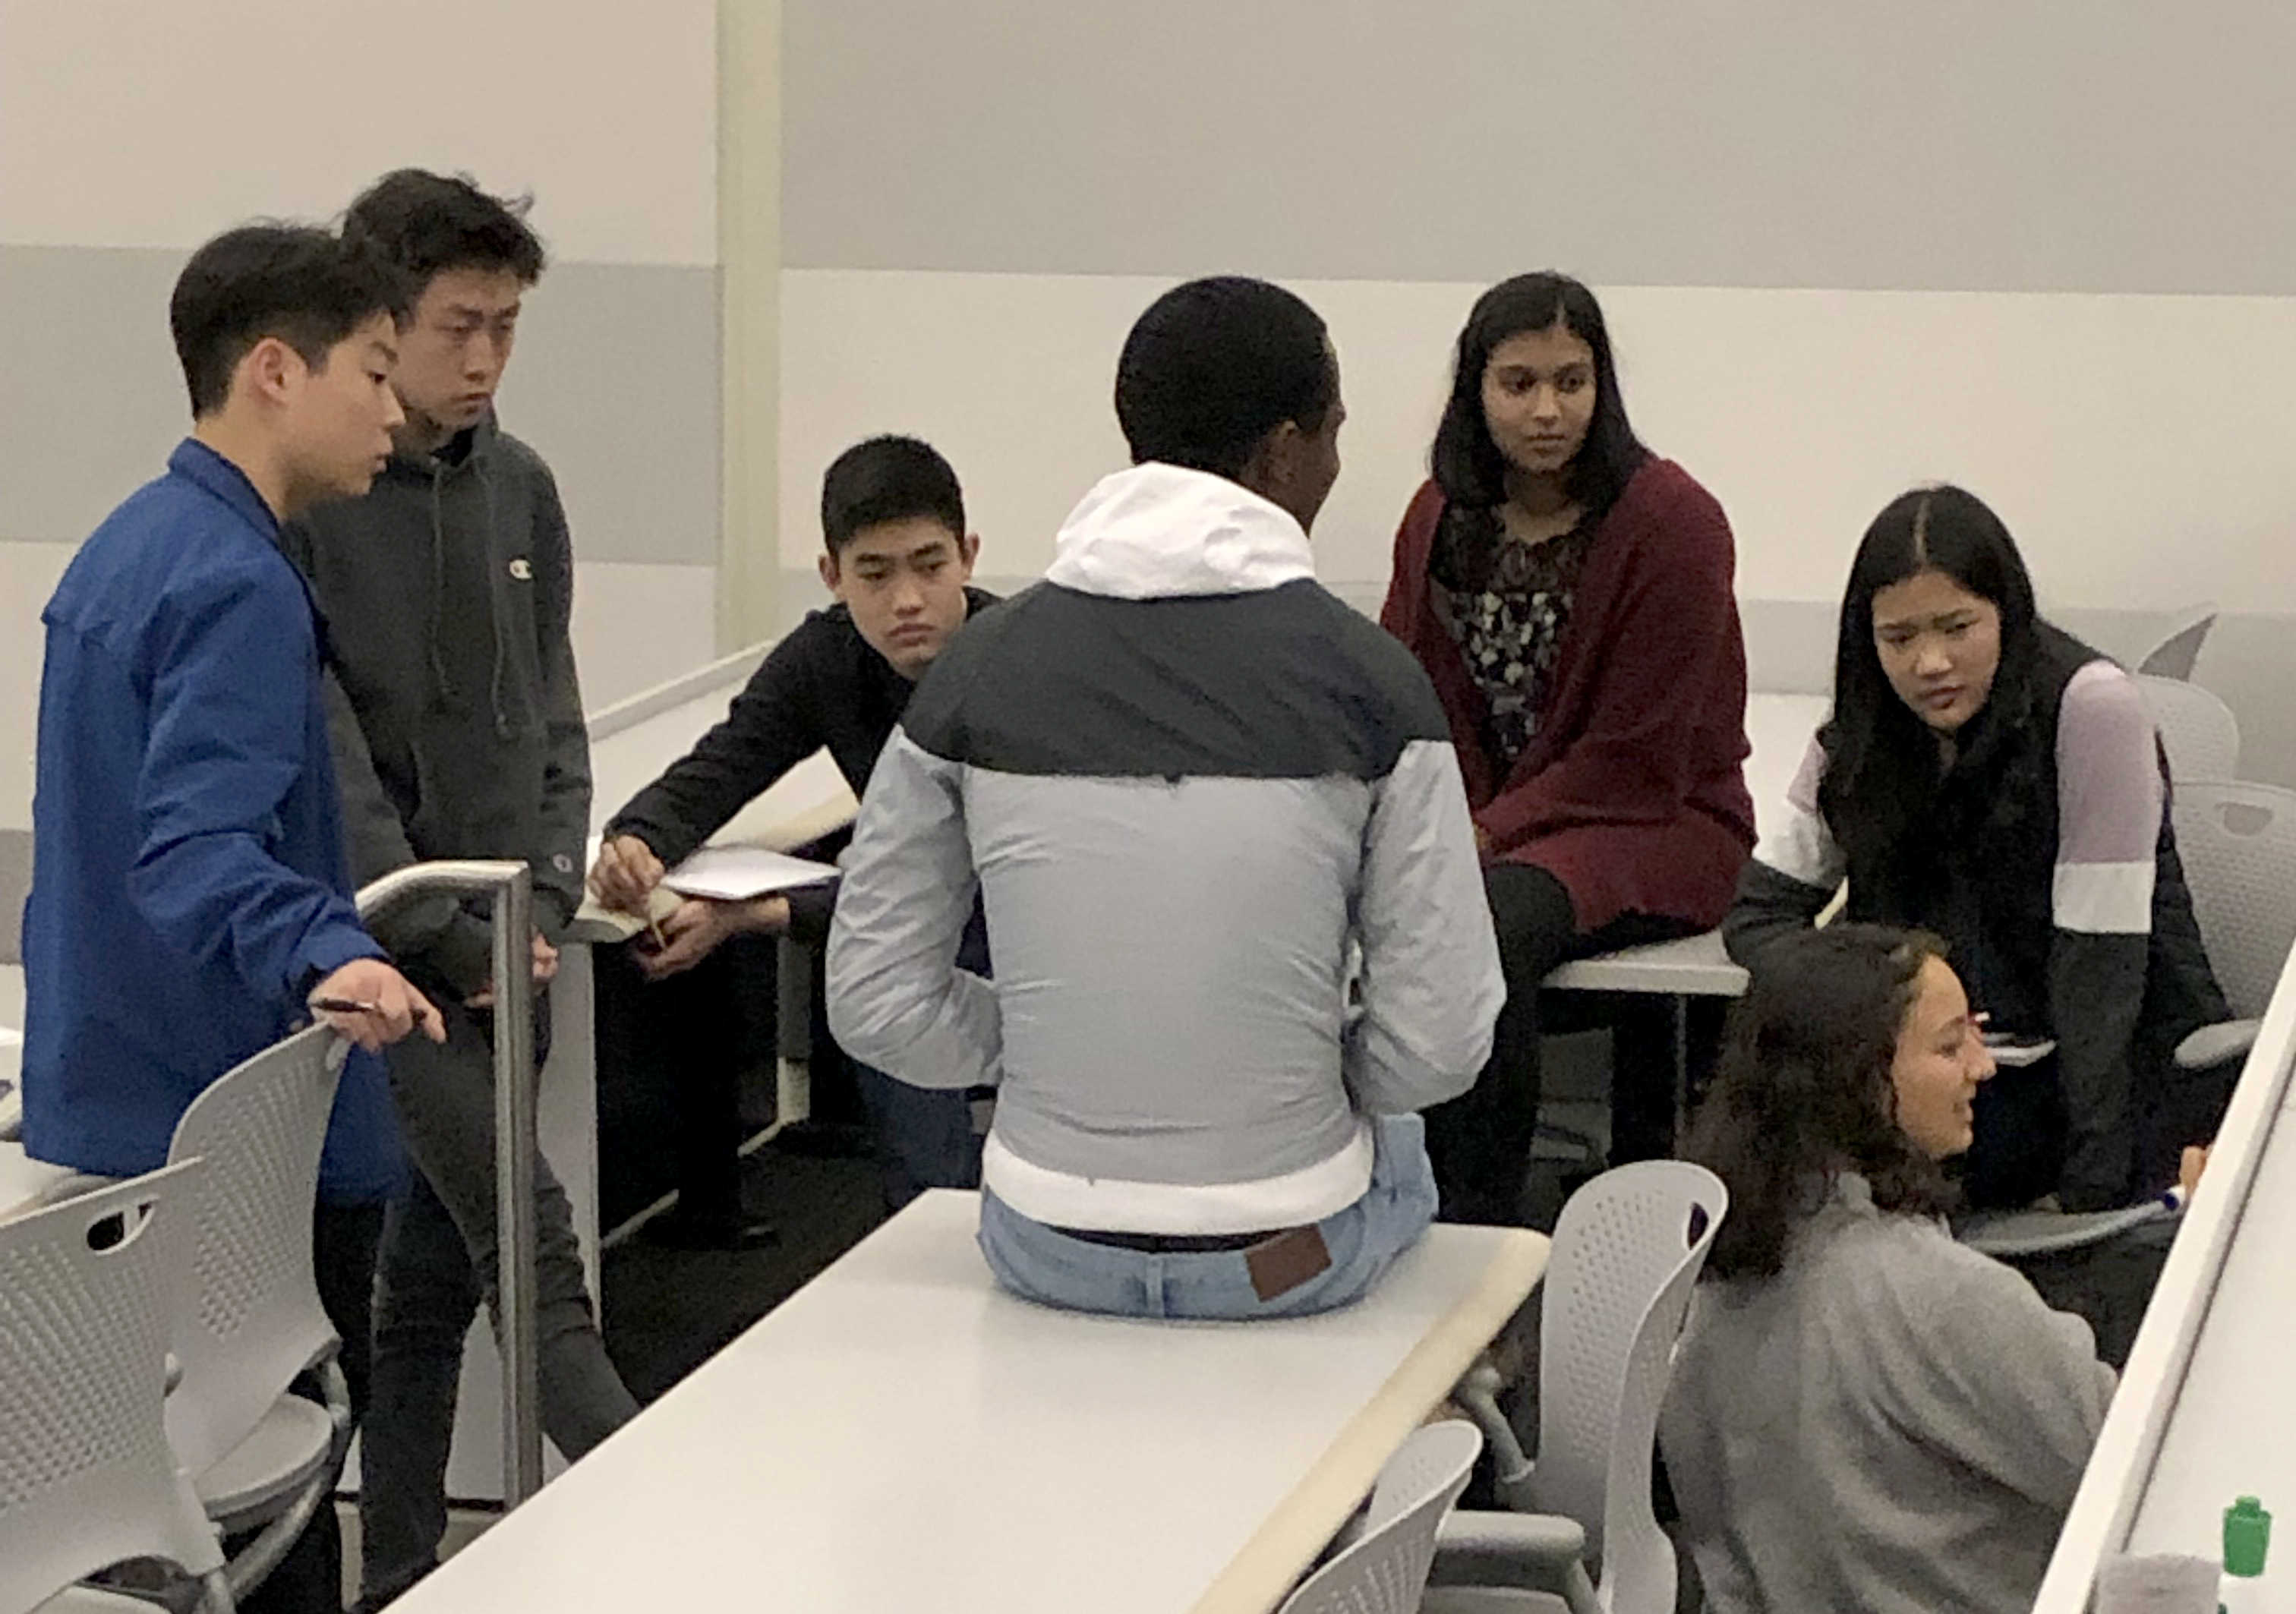 PSI students discussing research